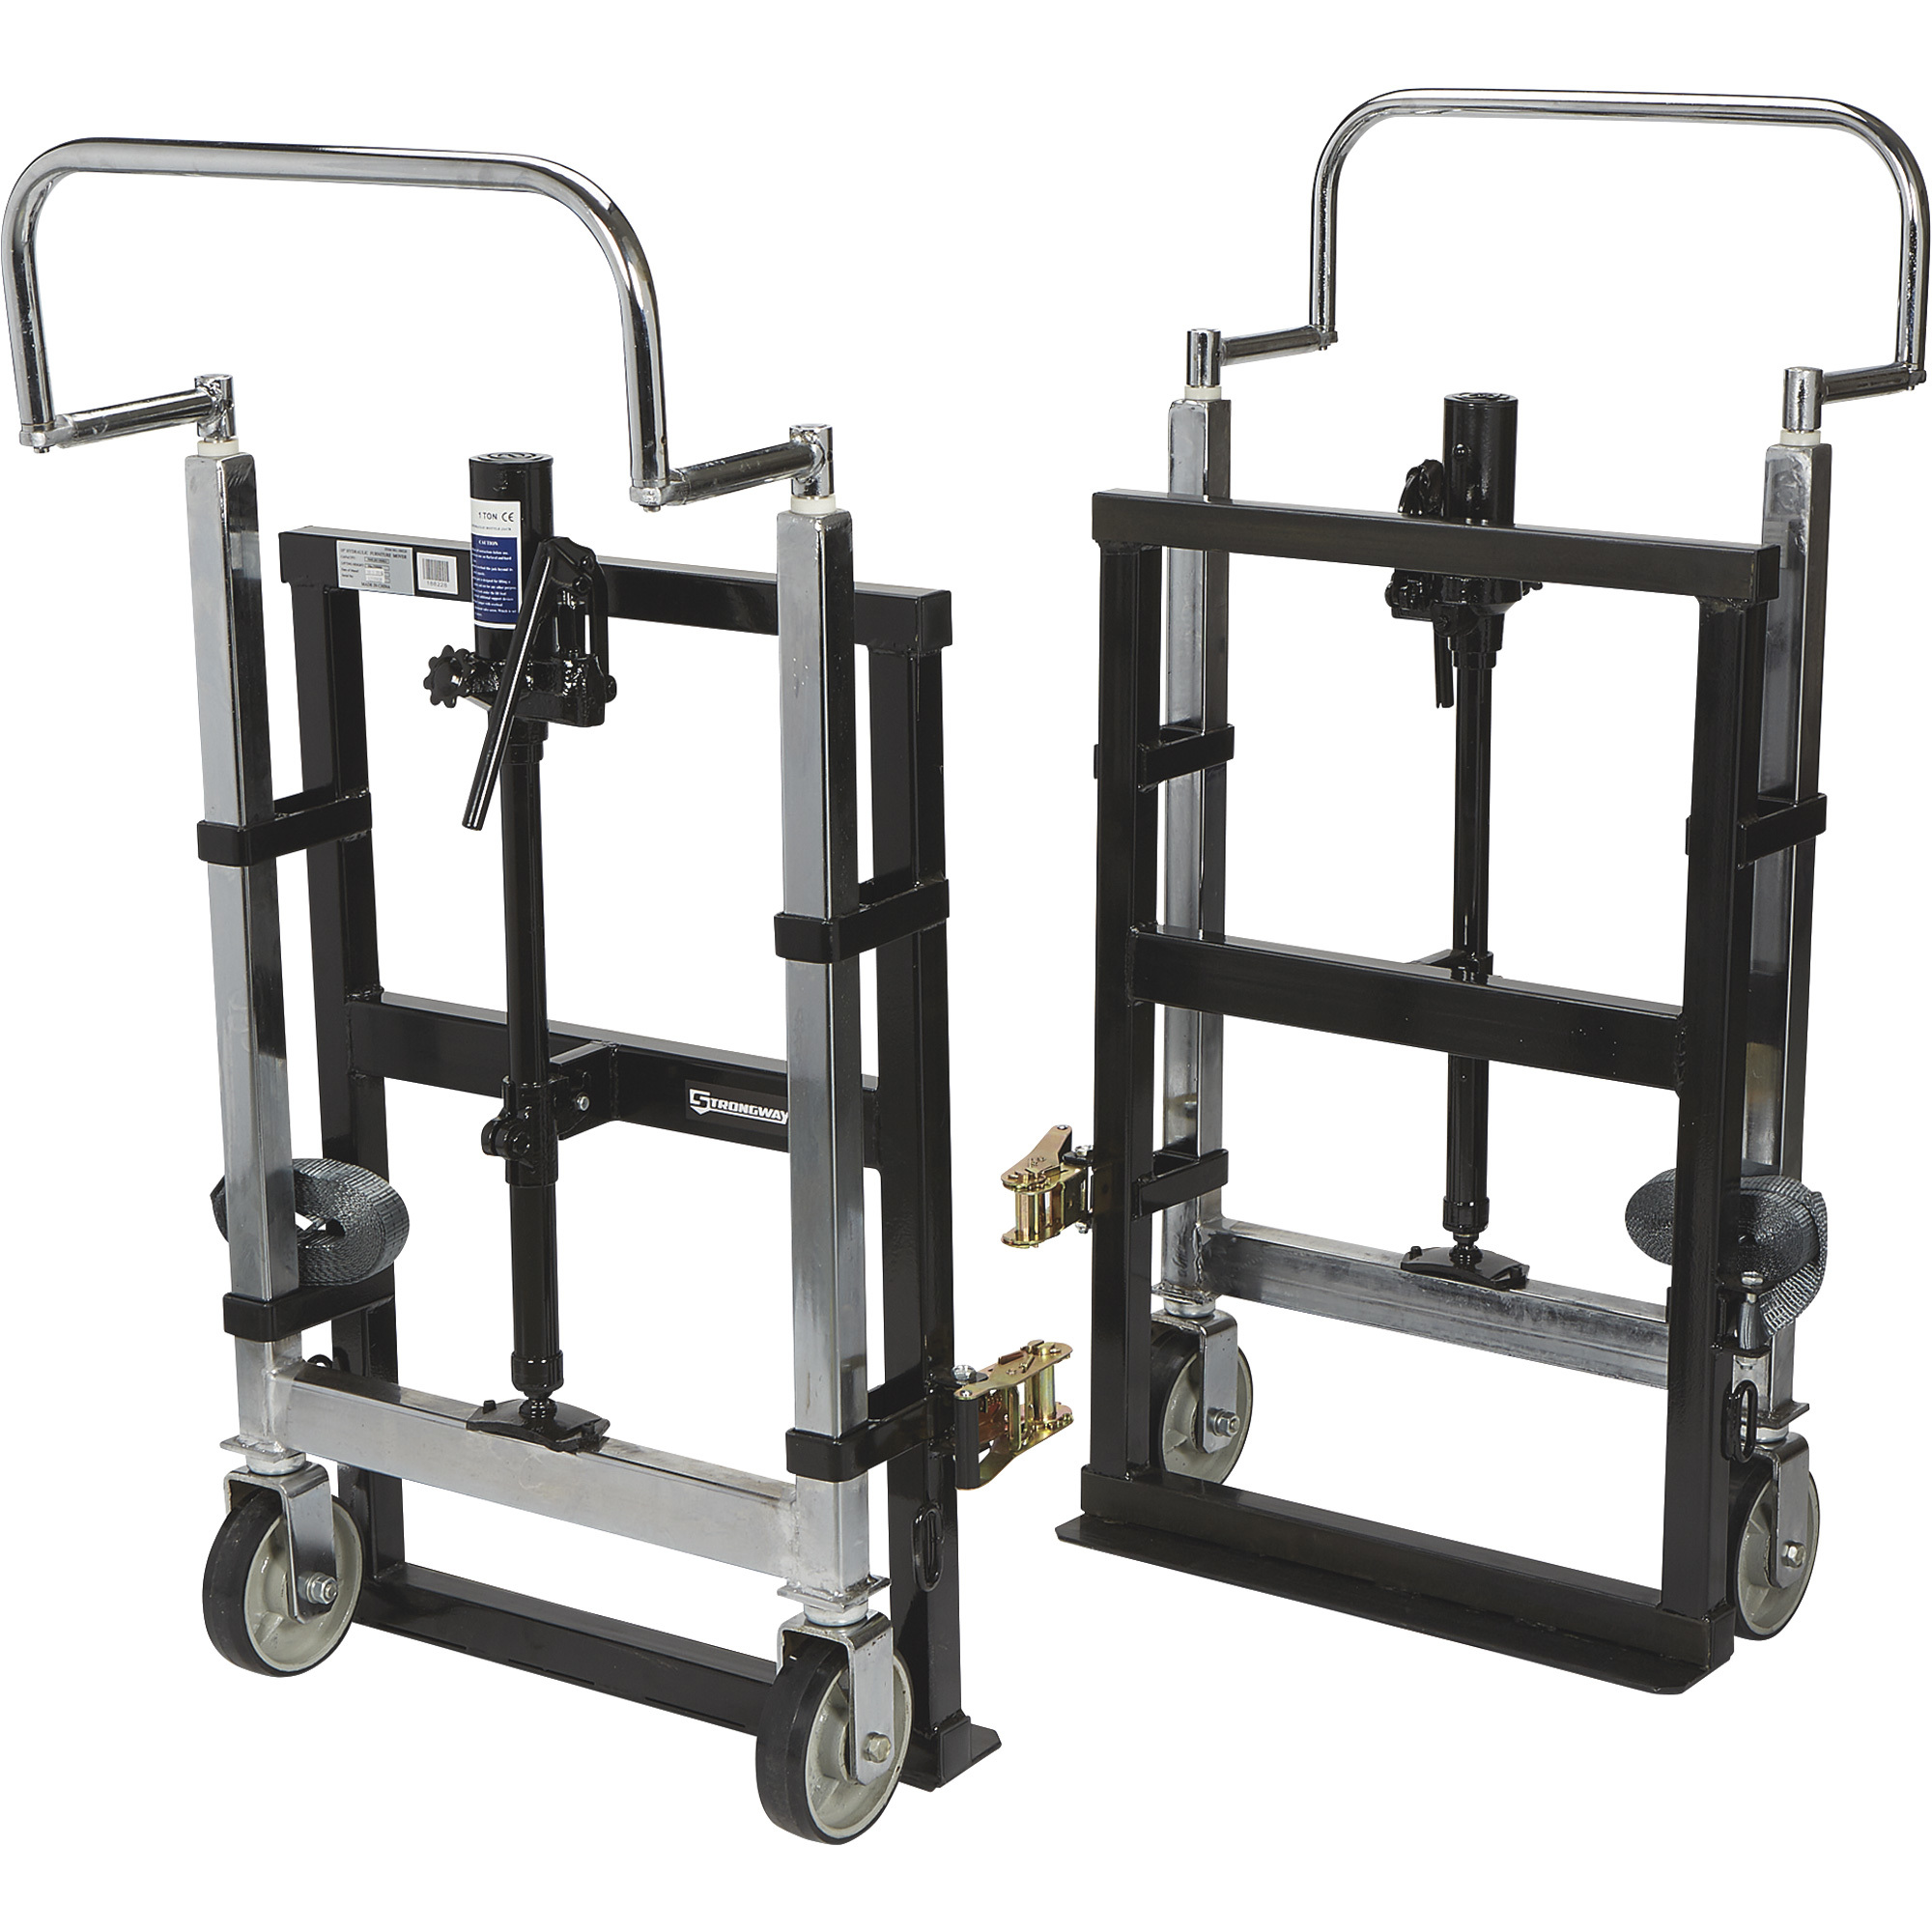 Strongway Hydraulic Furniture Mover Set 3960 Lb